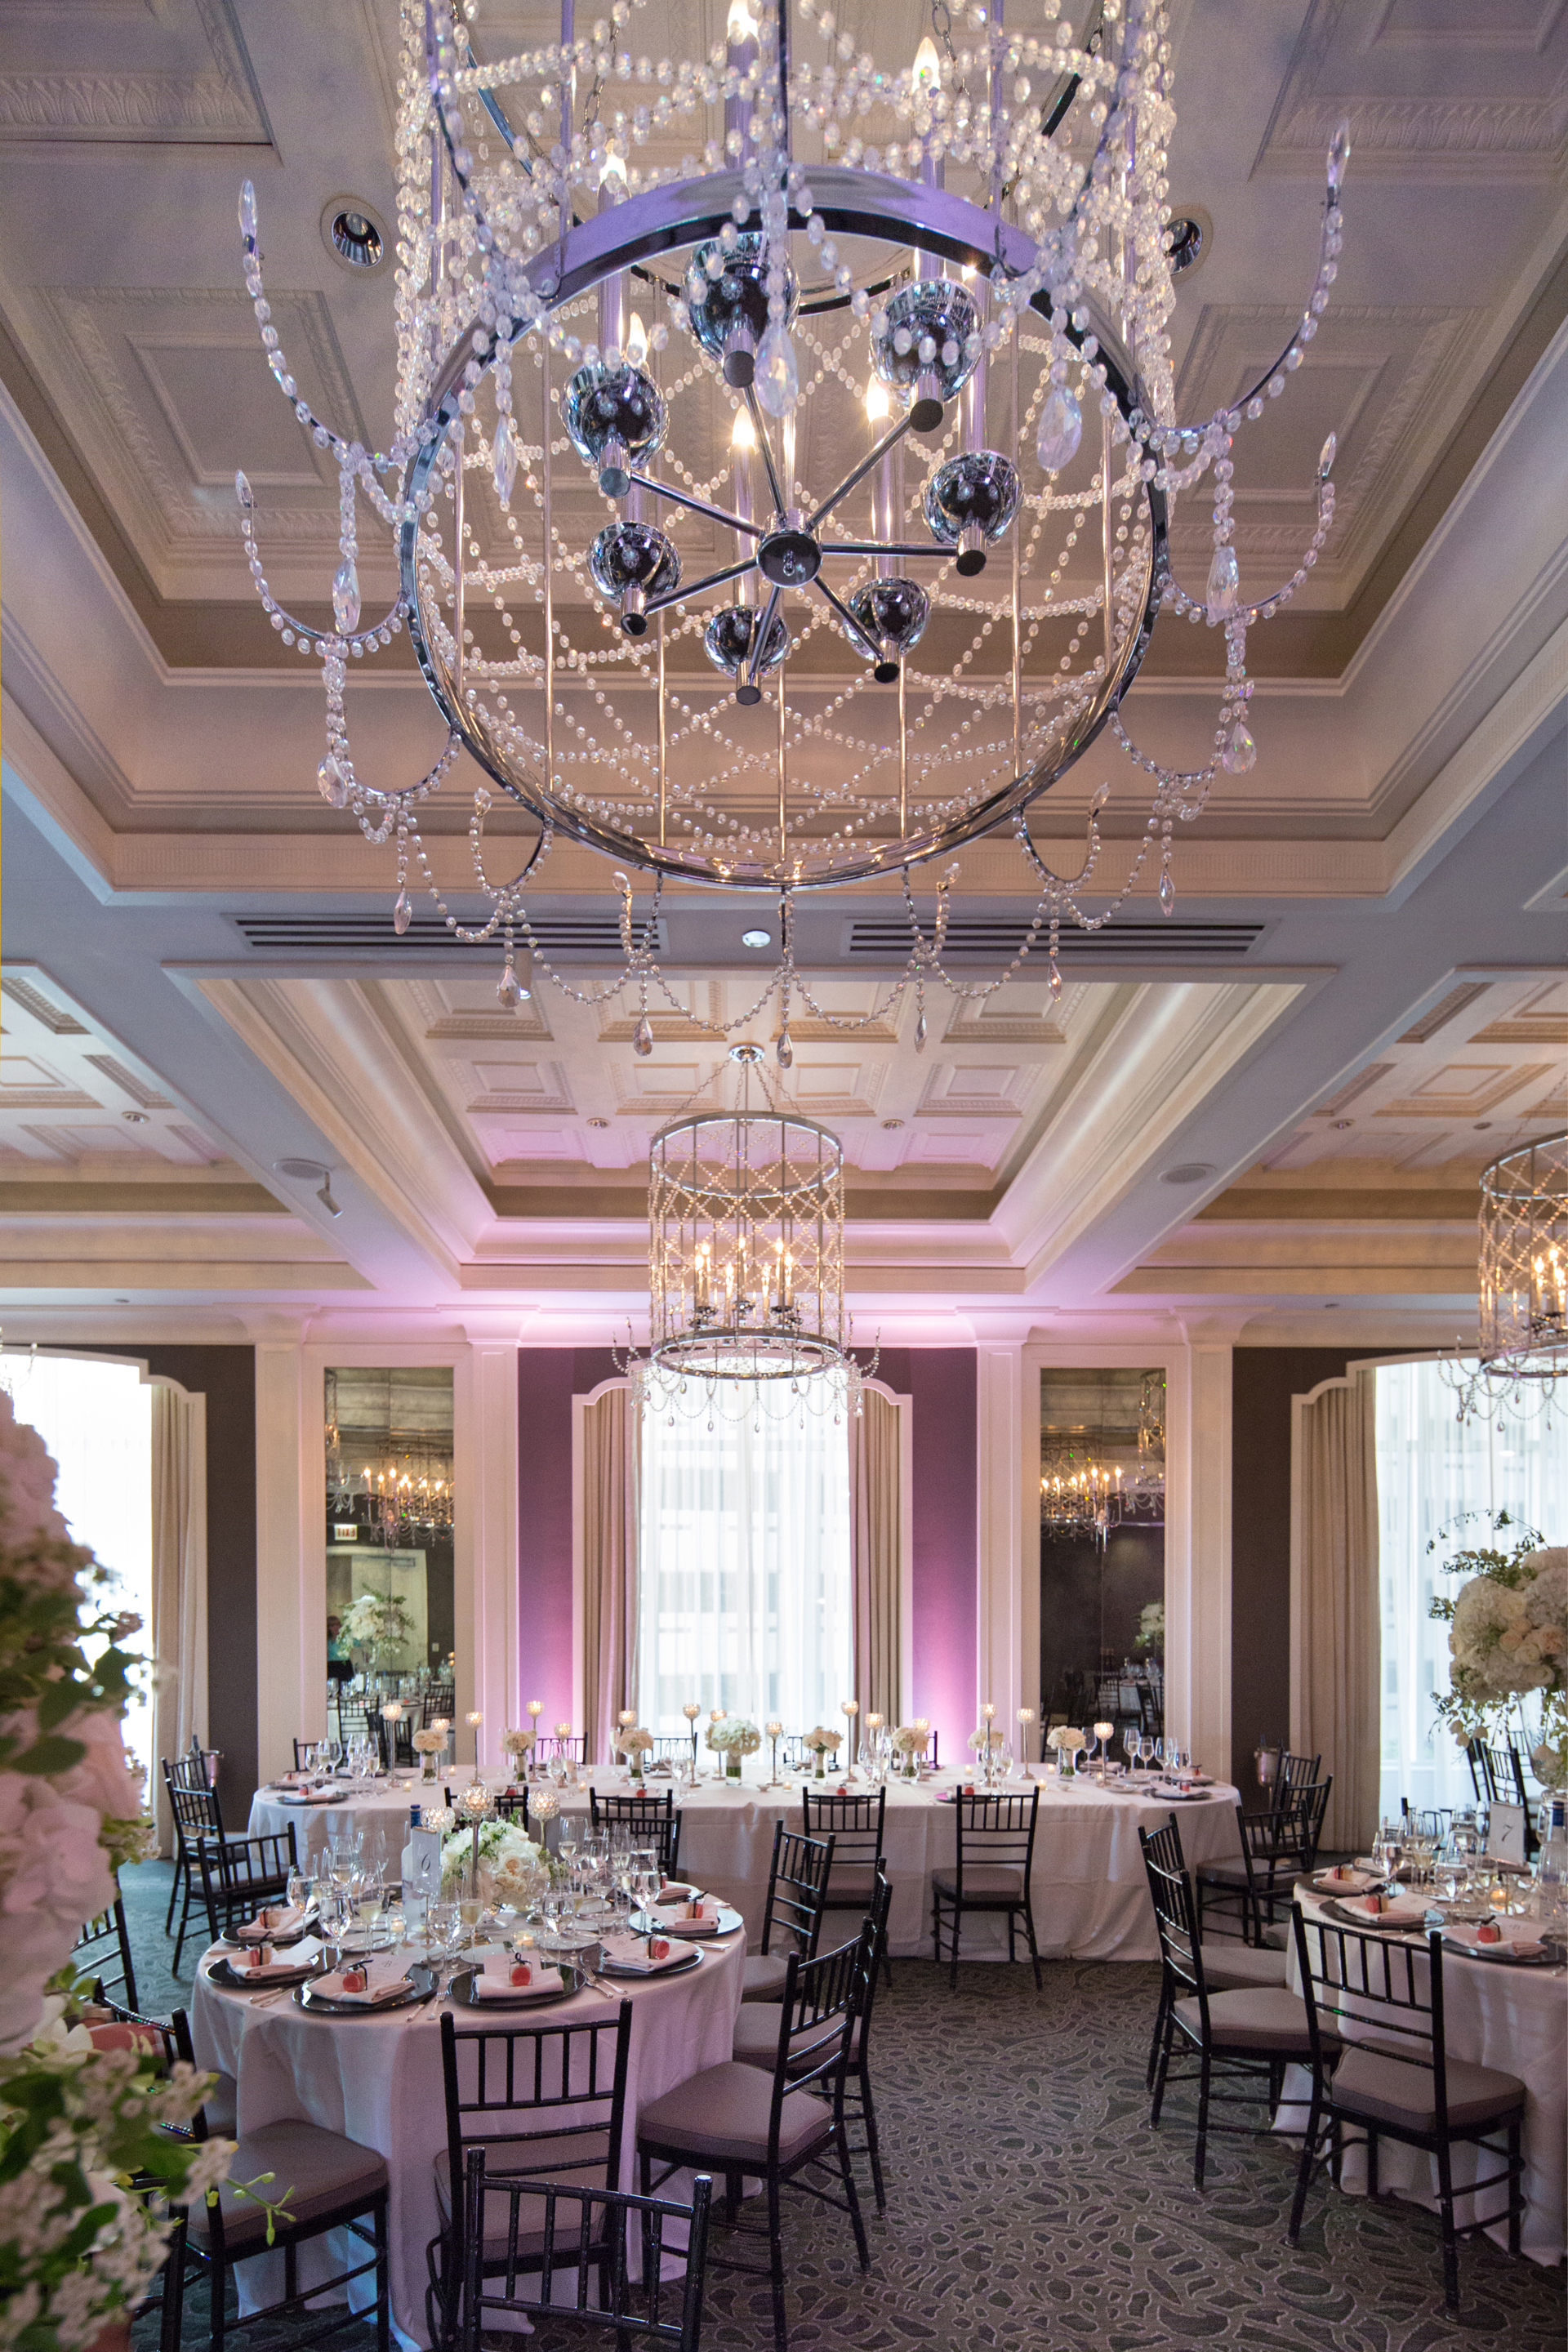 One of our favorite Chicago elegant hotel ballrooms to celebrate and photograph within. For Ray and Samantha's wedding day it was decorated to perfection with tables dressed-up in lush white flowers with silver and hanging crystal accents by Natural Beauties Floral and assistance with planning and set-up by Ashley Carpenter making the room look nothing but pure fabulous.